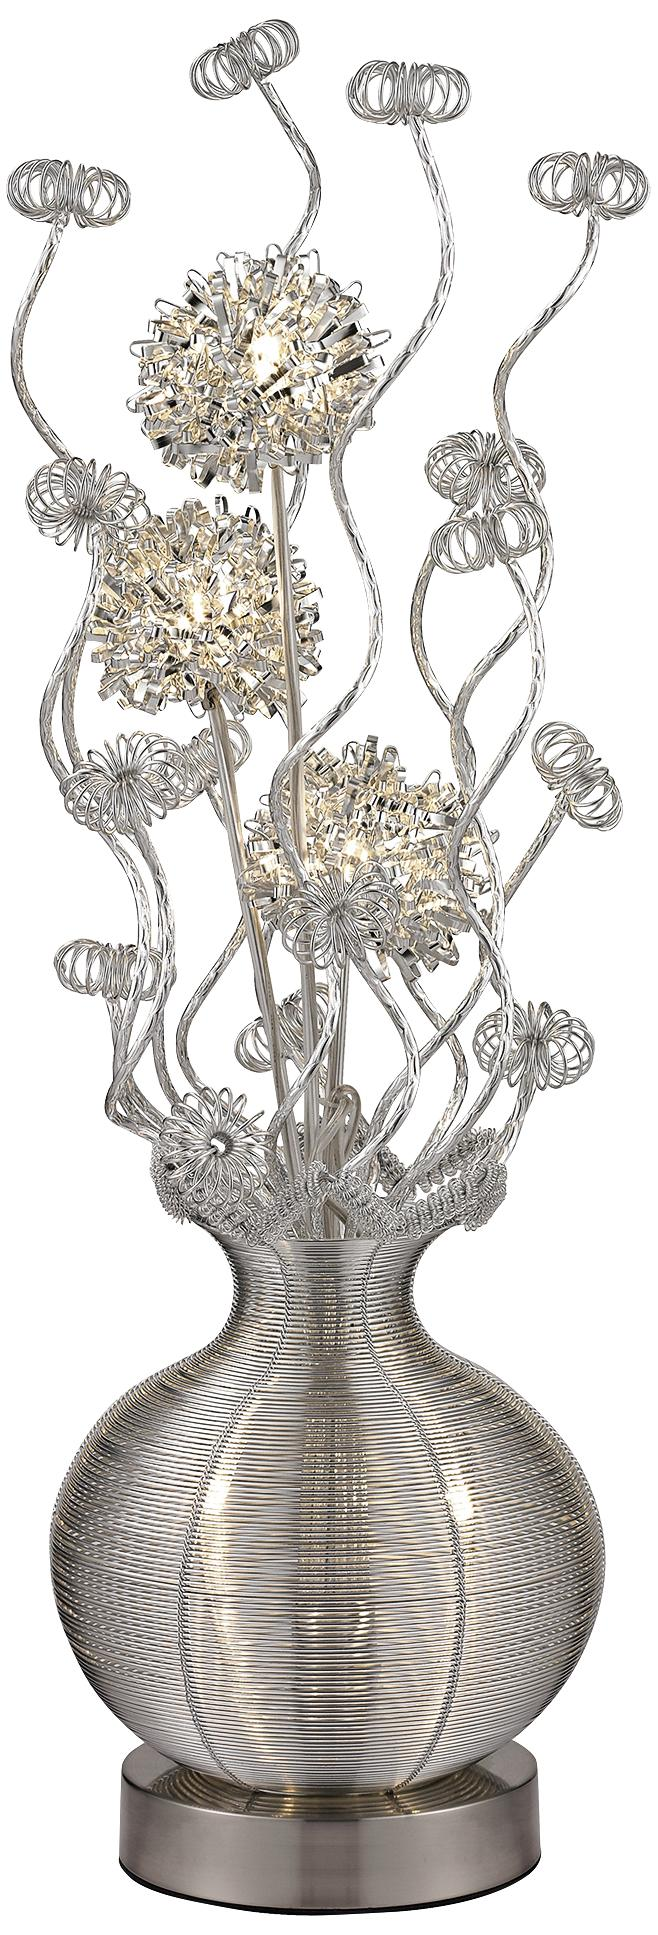 Dimond Lazelle Floral Display LED Floor Lamp (7R984)